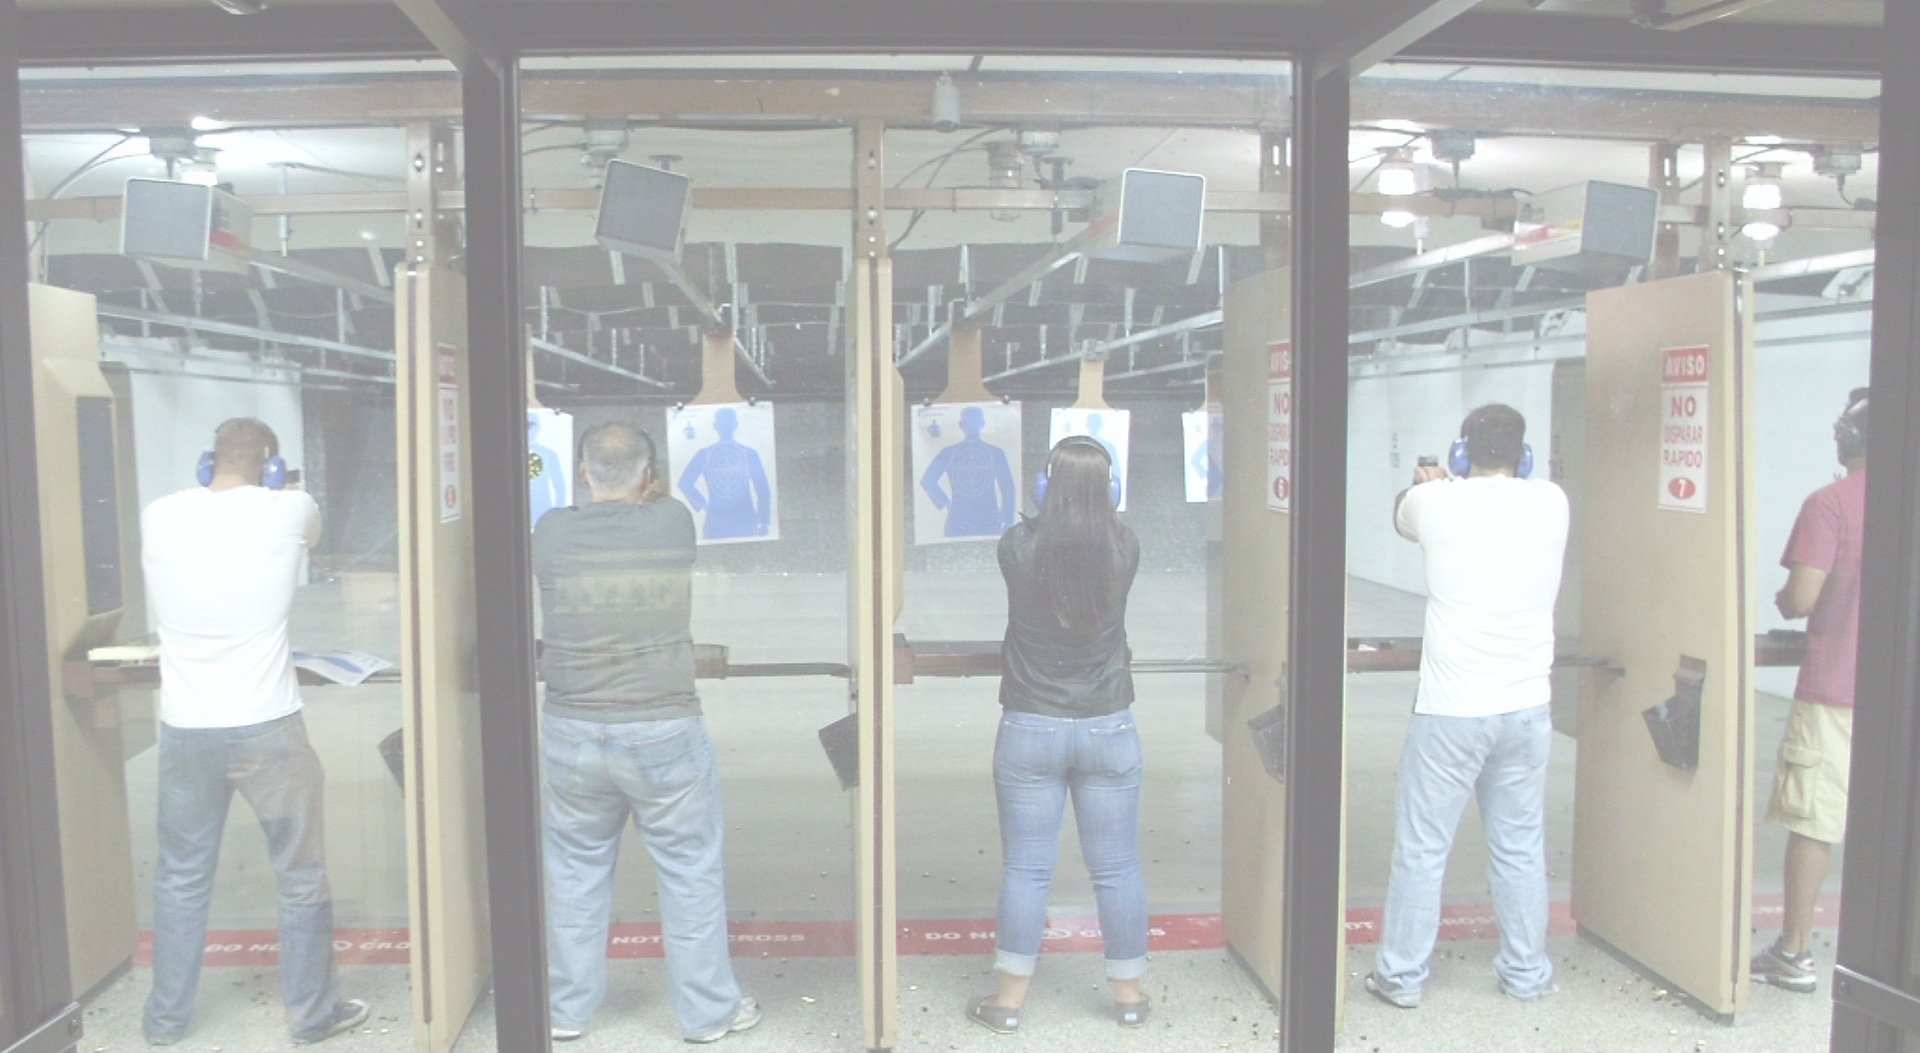 Shooting Range Facility Management Tools